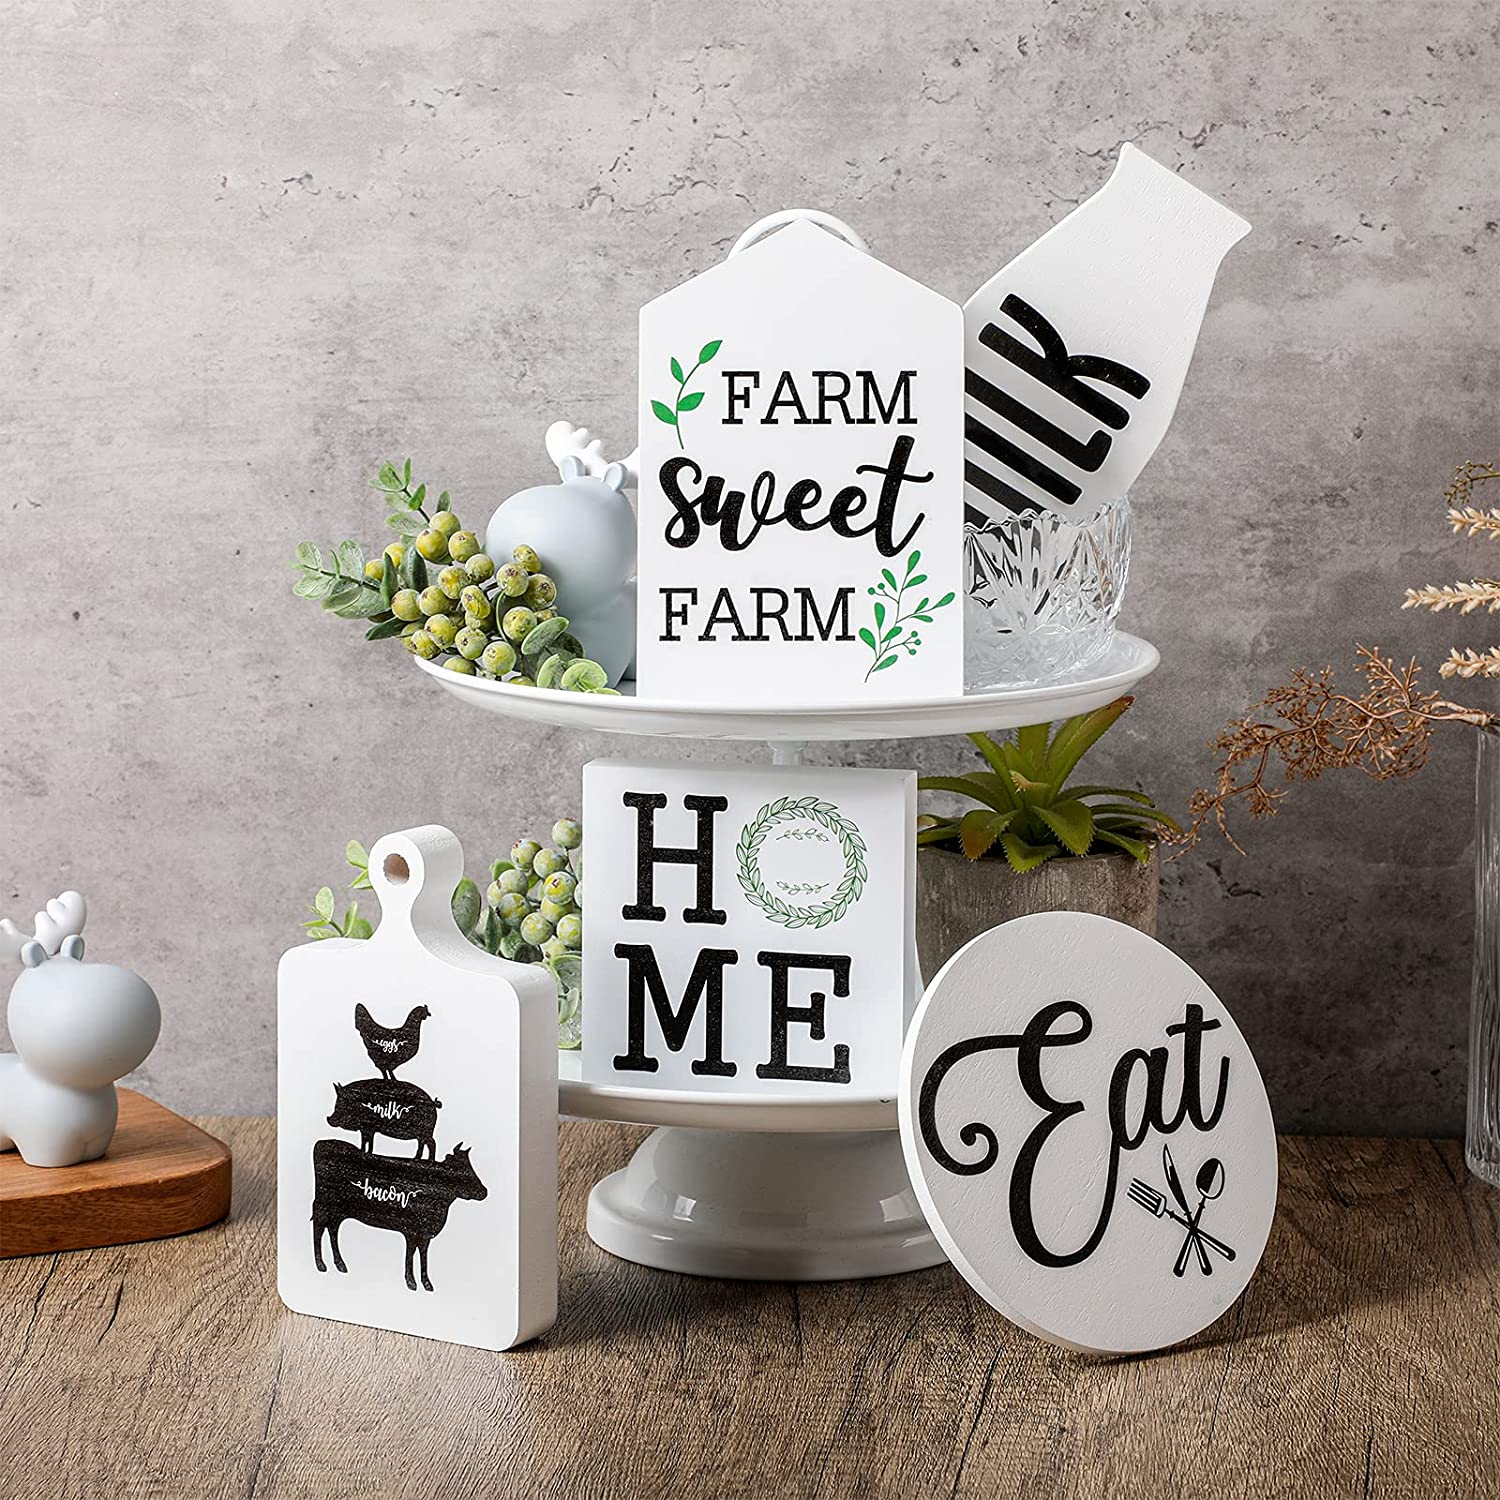 5 Pieces Farmhouse Tiered Tray Decorations Set Home Wood Signs Table Kitchen Tiered Tray Decor Rustic Wood Decoration Farm Sweet Farm Wood Sign for Home Kitchen Shelf Photo Prop